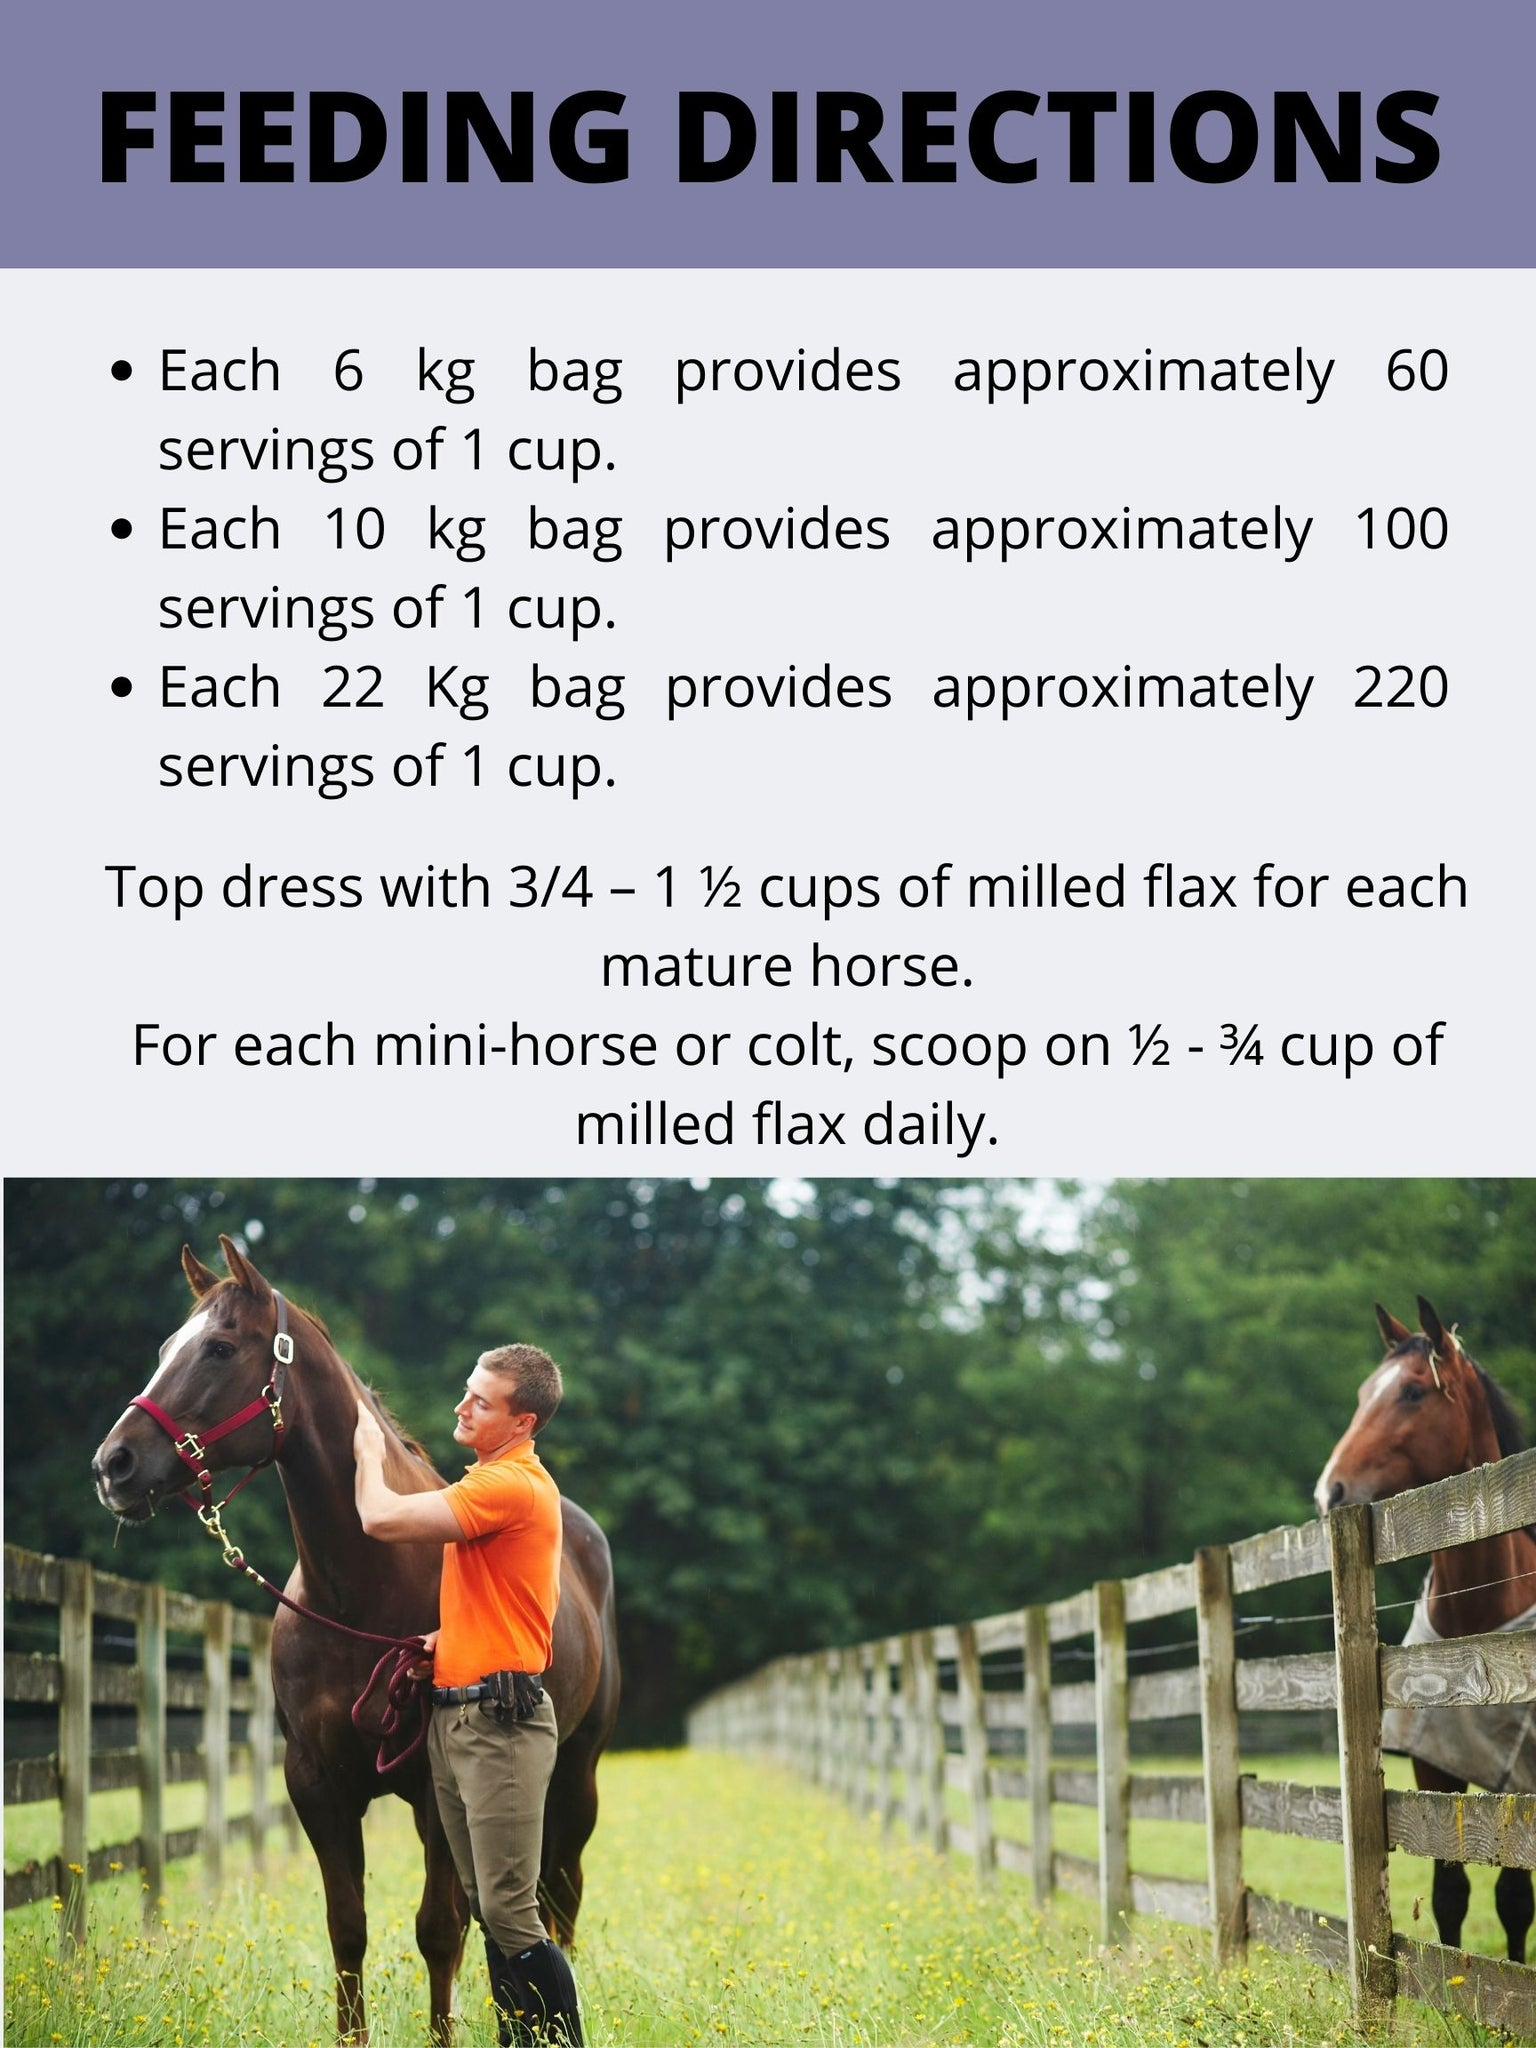 Feeding Directions for Horses